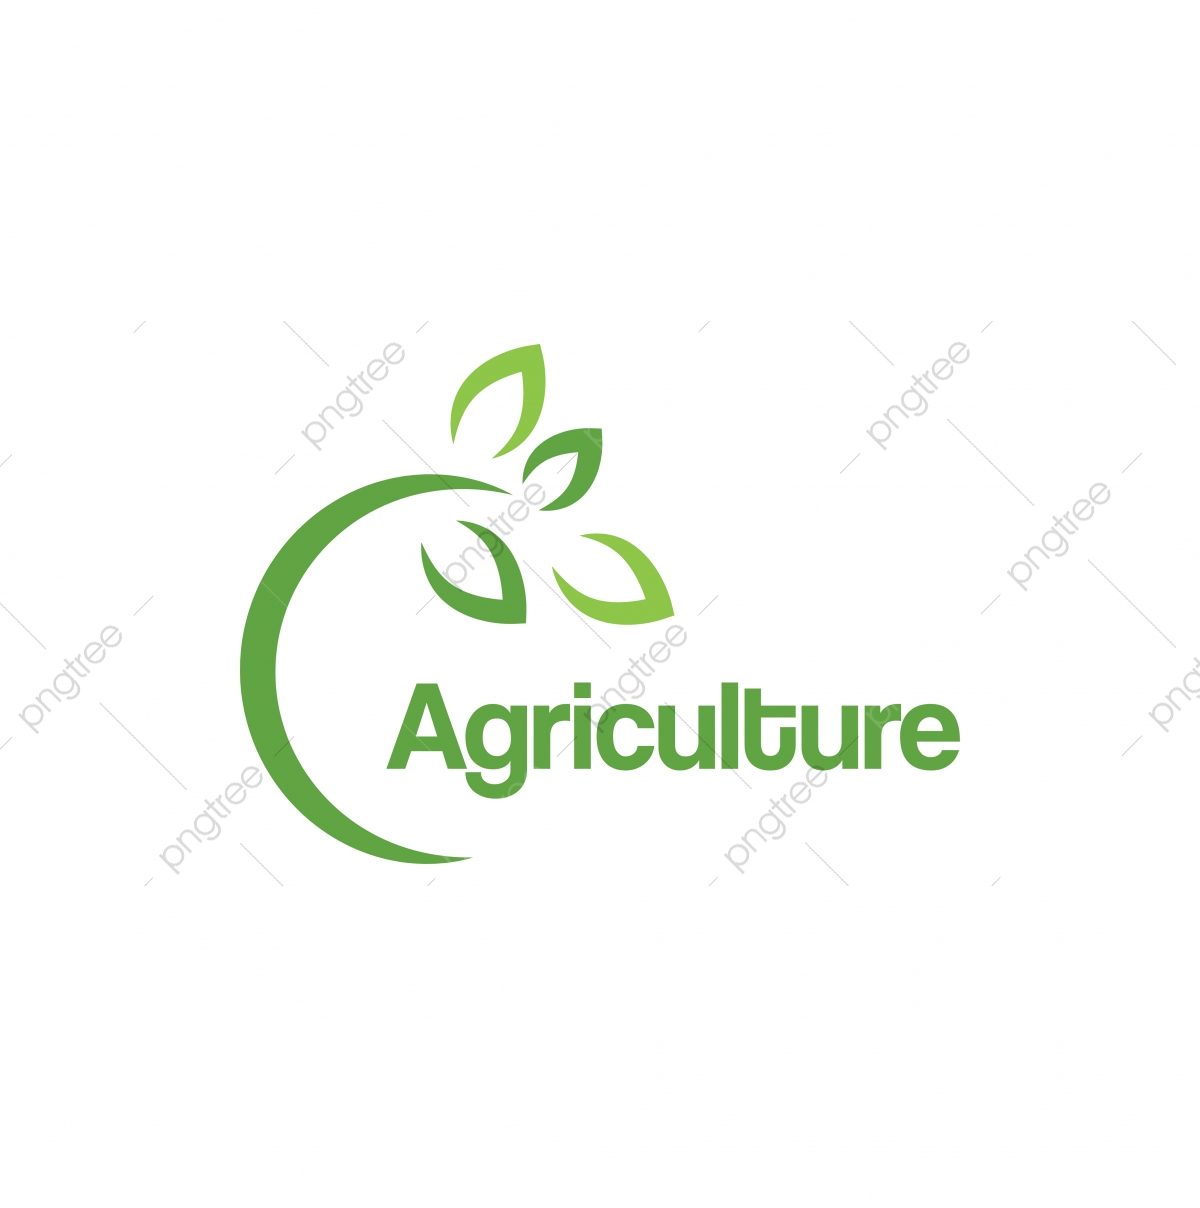 Science Cartoon png download - 958*980 - Free Transparent Agriculture png  Download. - CleanPNG / KissPNG